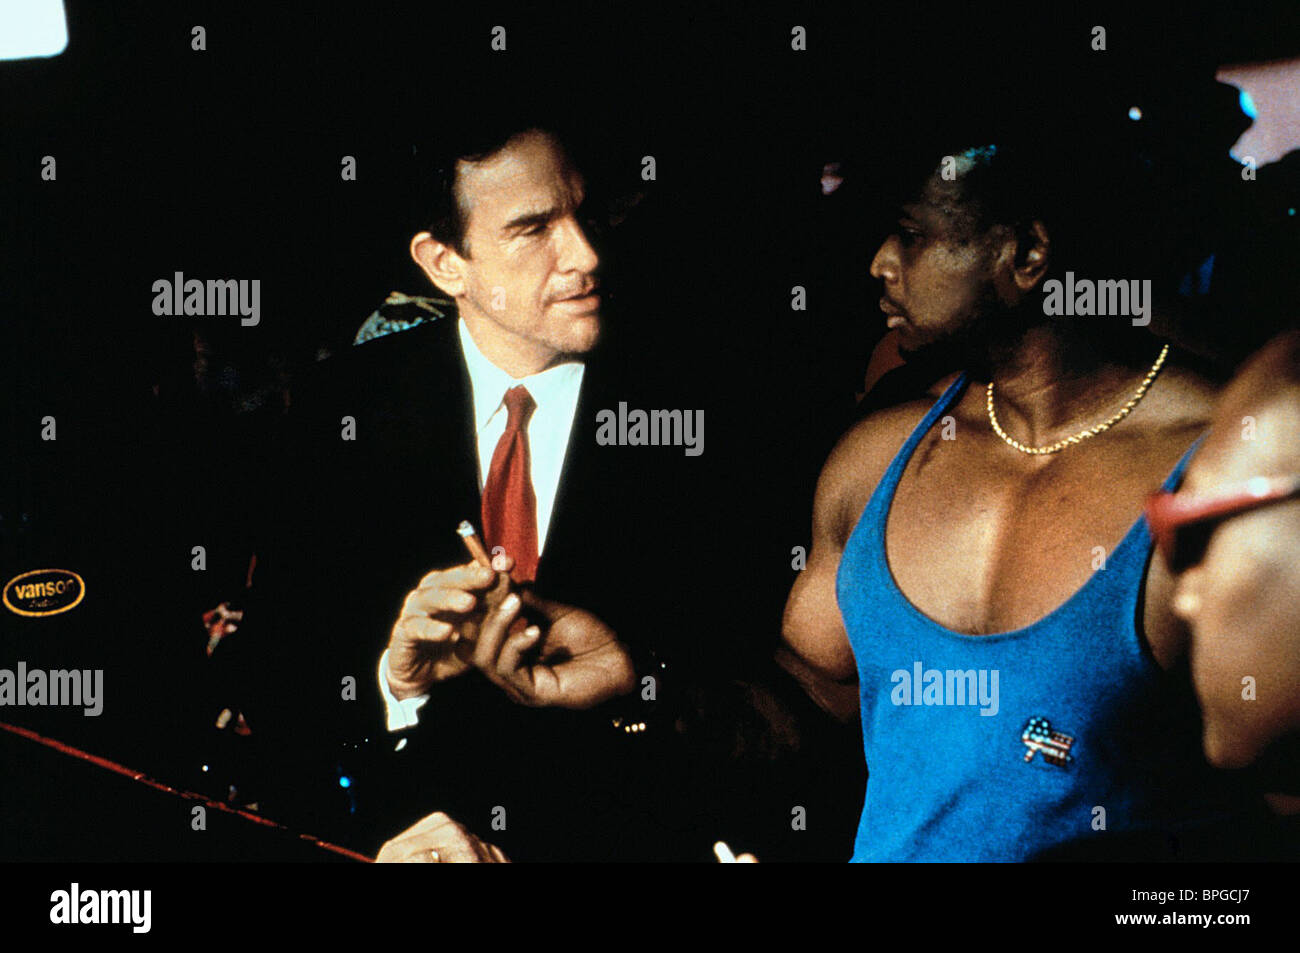 WARREN BEATTY BULWORTH (1998) - Stock Image